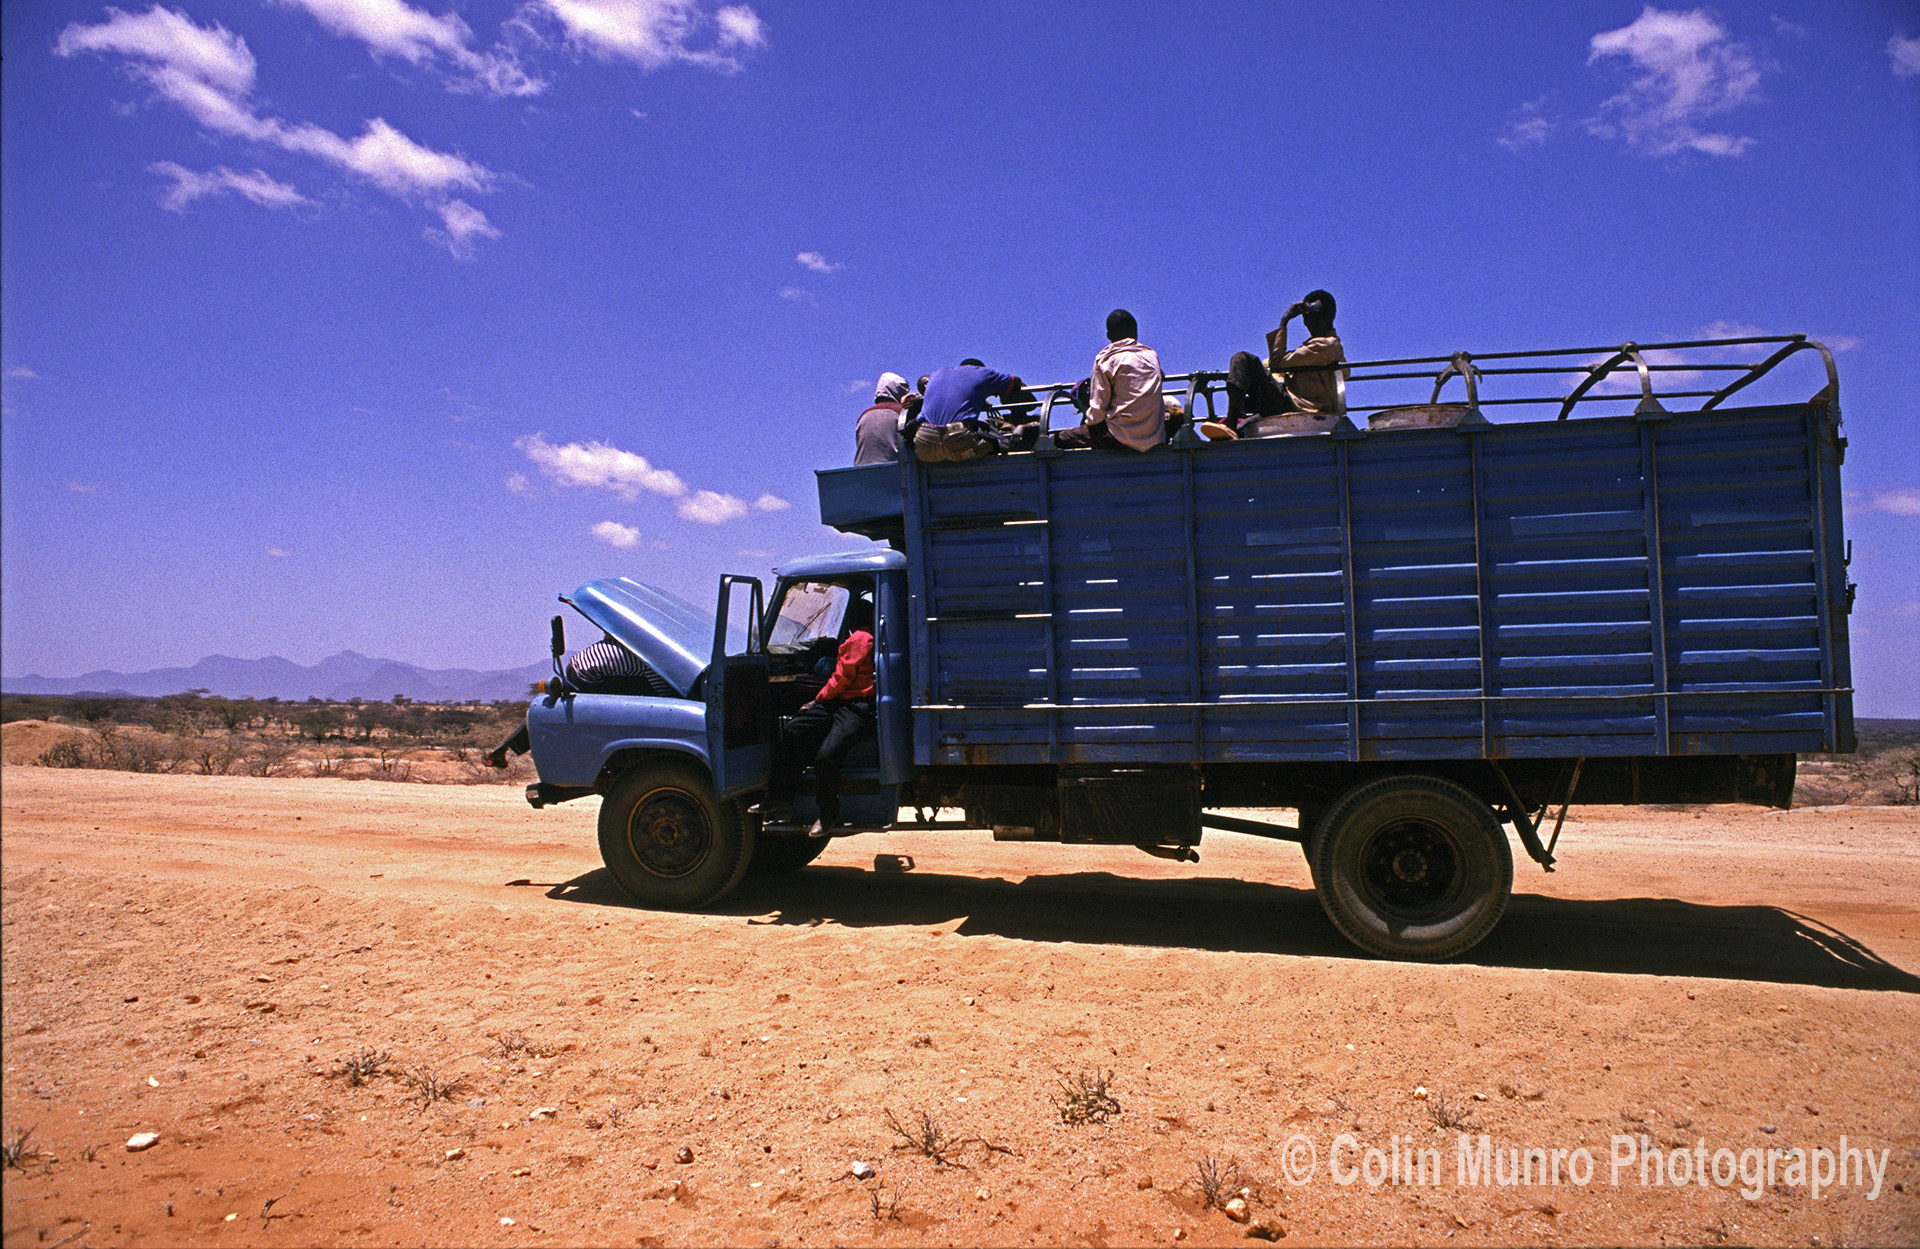 A truck carrying food aid to Marsabit and Turkana, 1980s, breaks down. www.colinmunrophotography.com